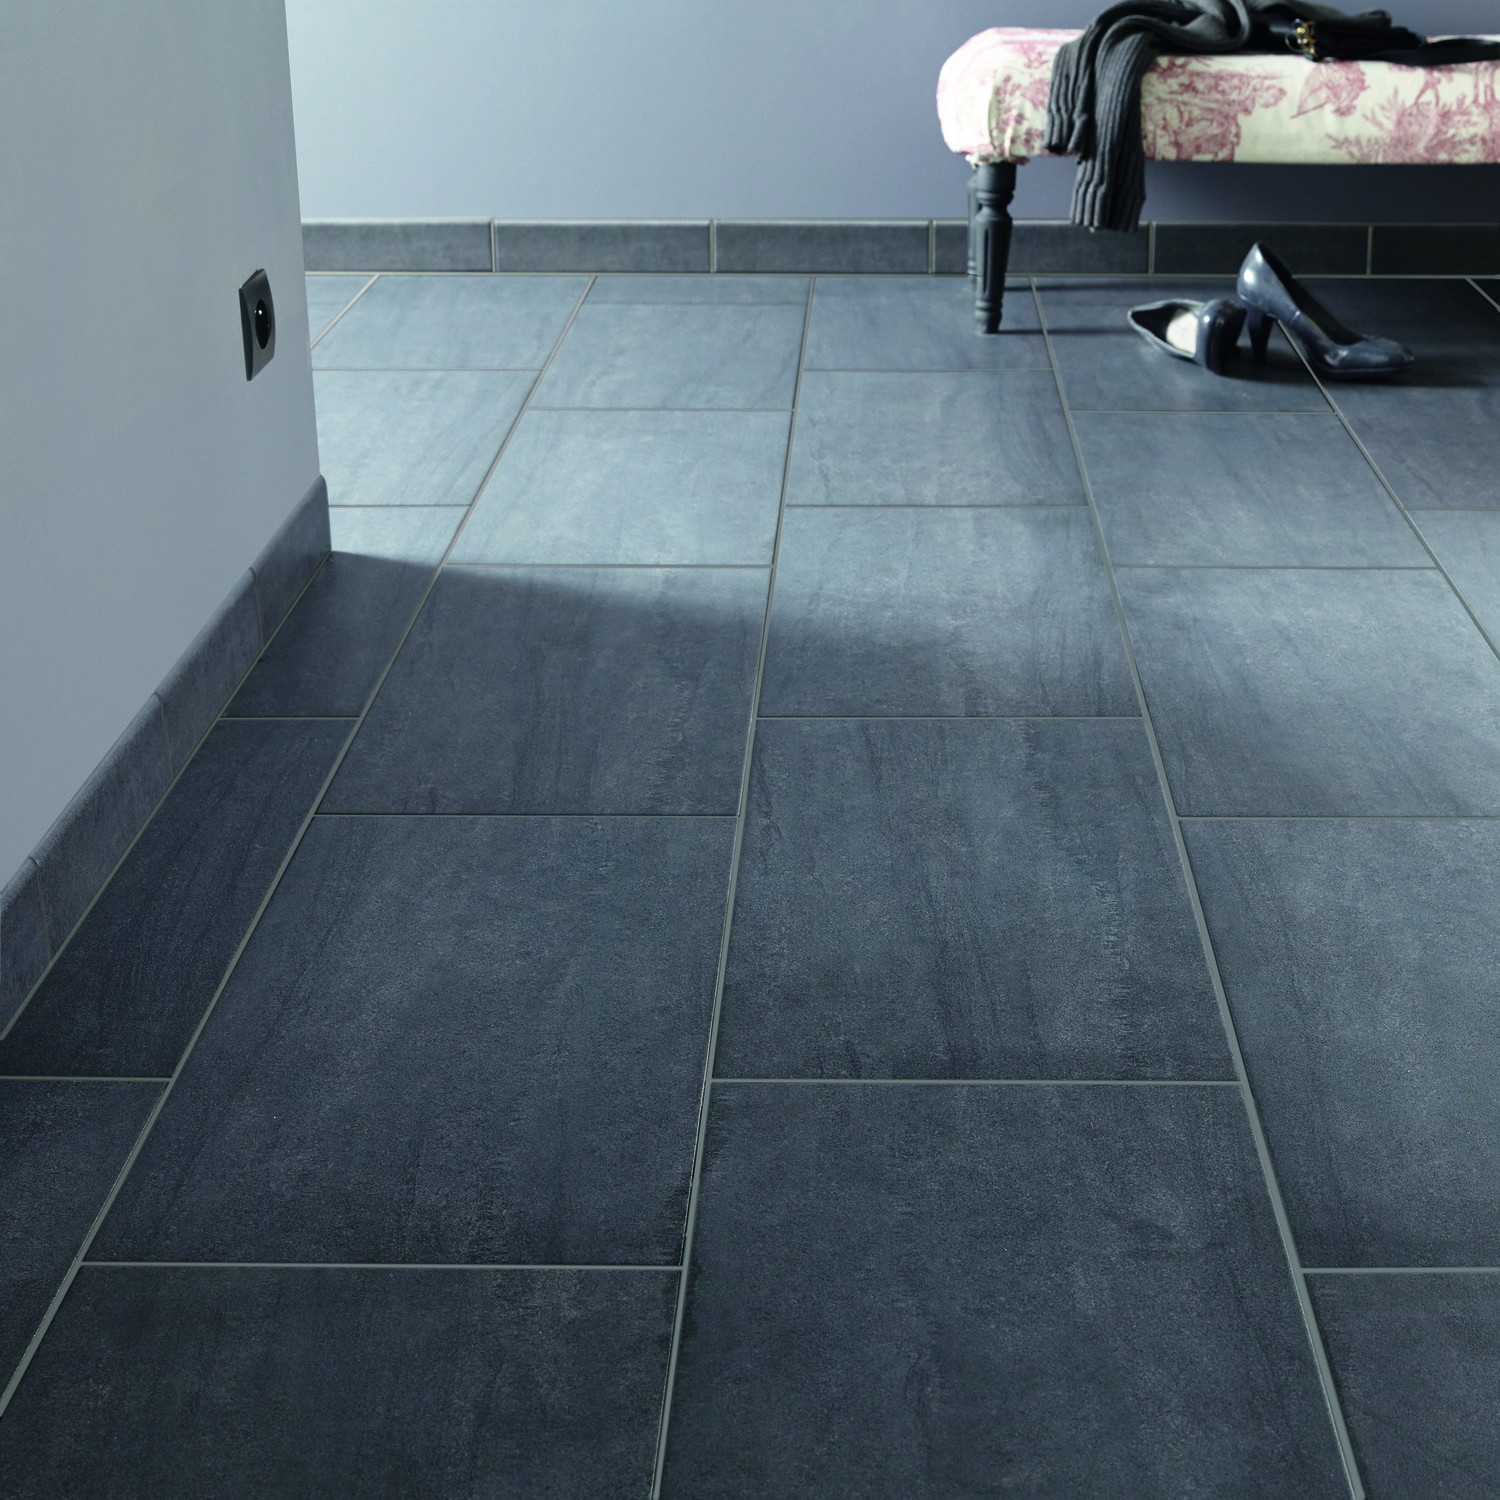 Carrelage gris anthracite rectangulaire